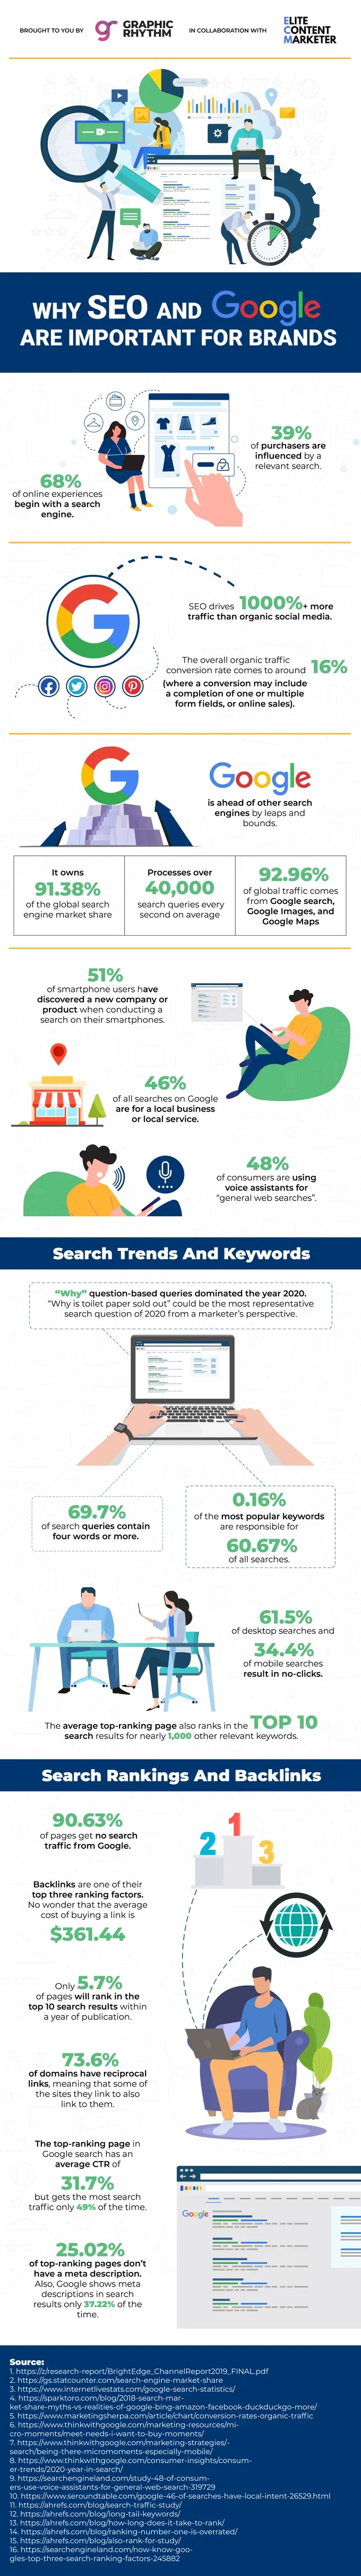 Why SEO and Google are important for brands search statistics infographic